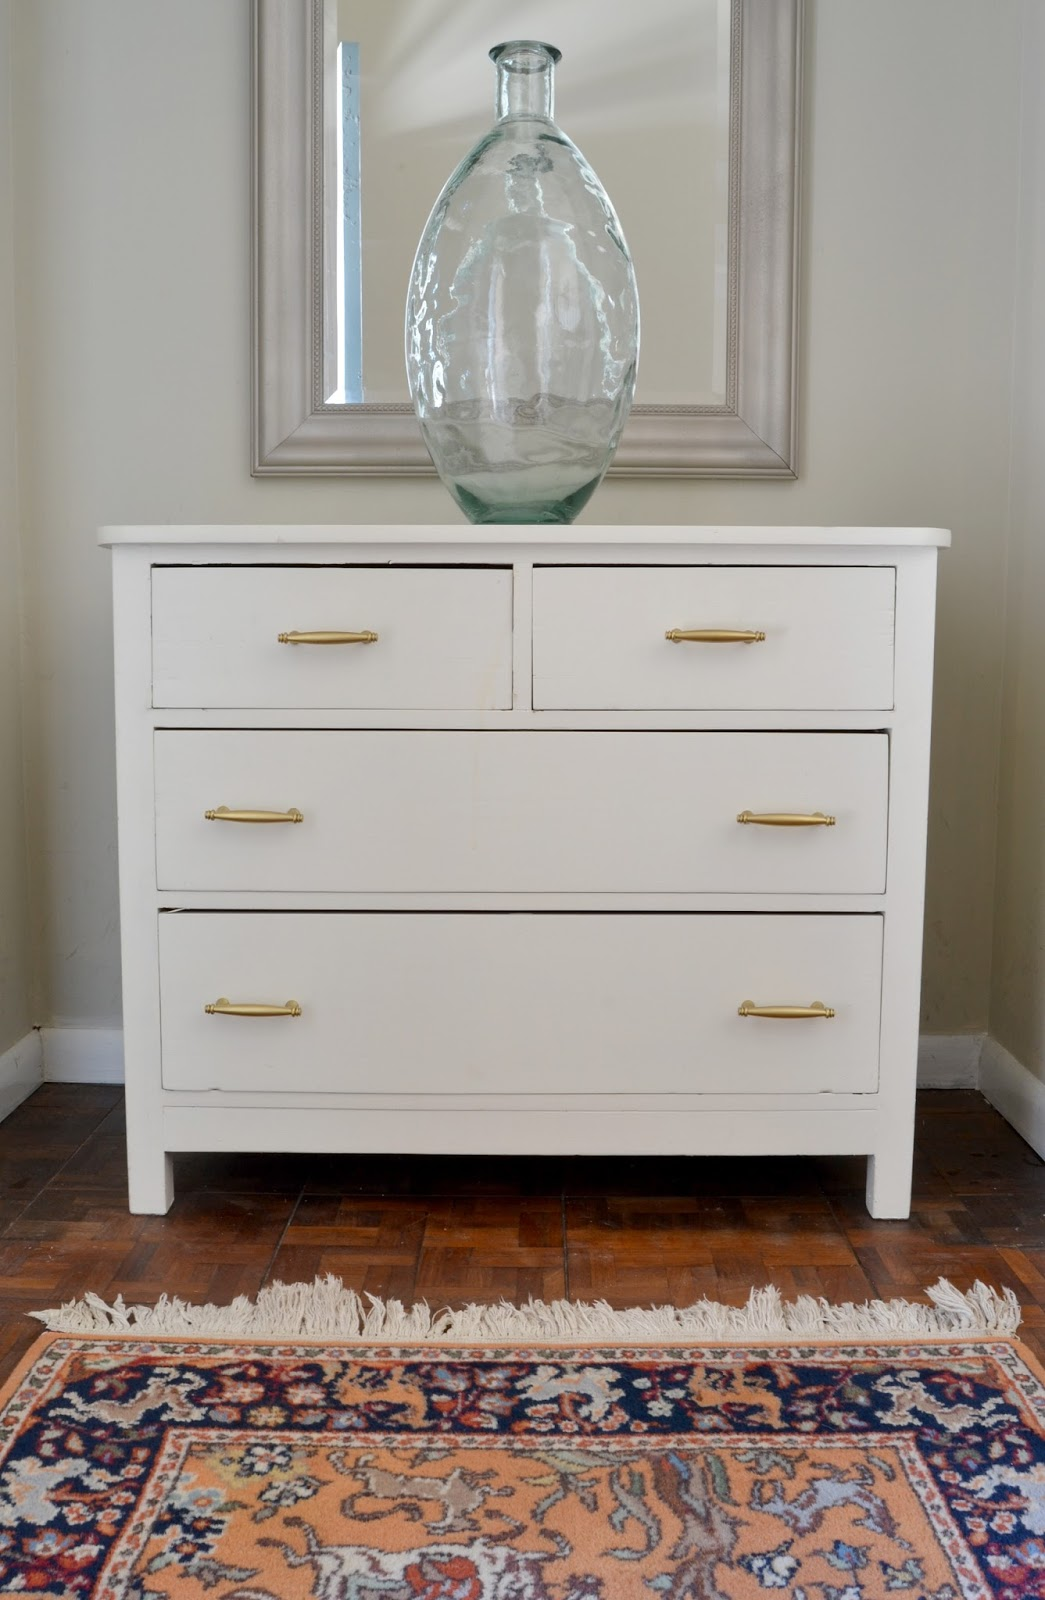 10 things you should know about spray paint livelovediy bloglovin for Spray paint bedroom furniture